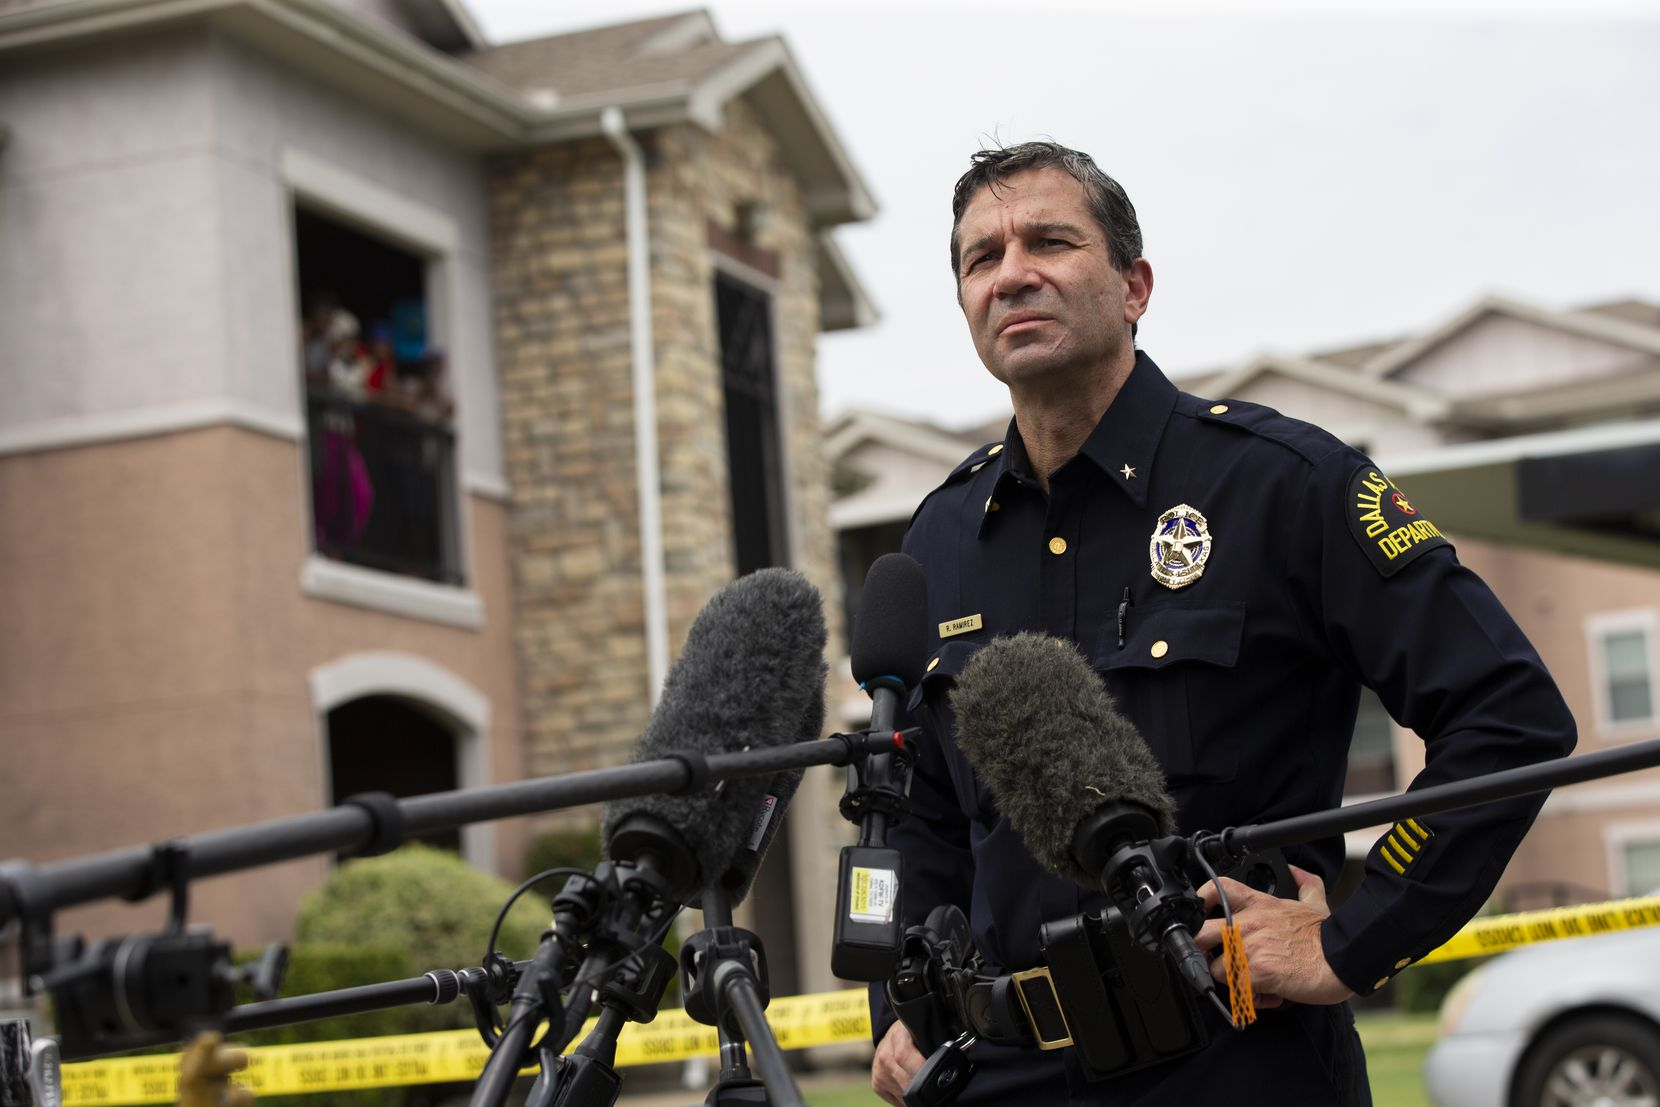 Dallas Police Deputy Chief Reuben Ramirez spoke to the press at the scene of a possible triple homicide at the Rosemont at Ash Creek apartments on Aug. 31 in East Dallas. (Juan Figueroa/The Dallas Morning News)